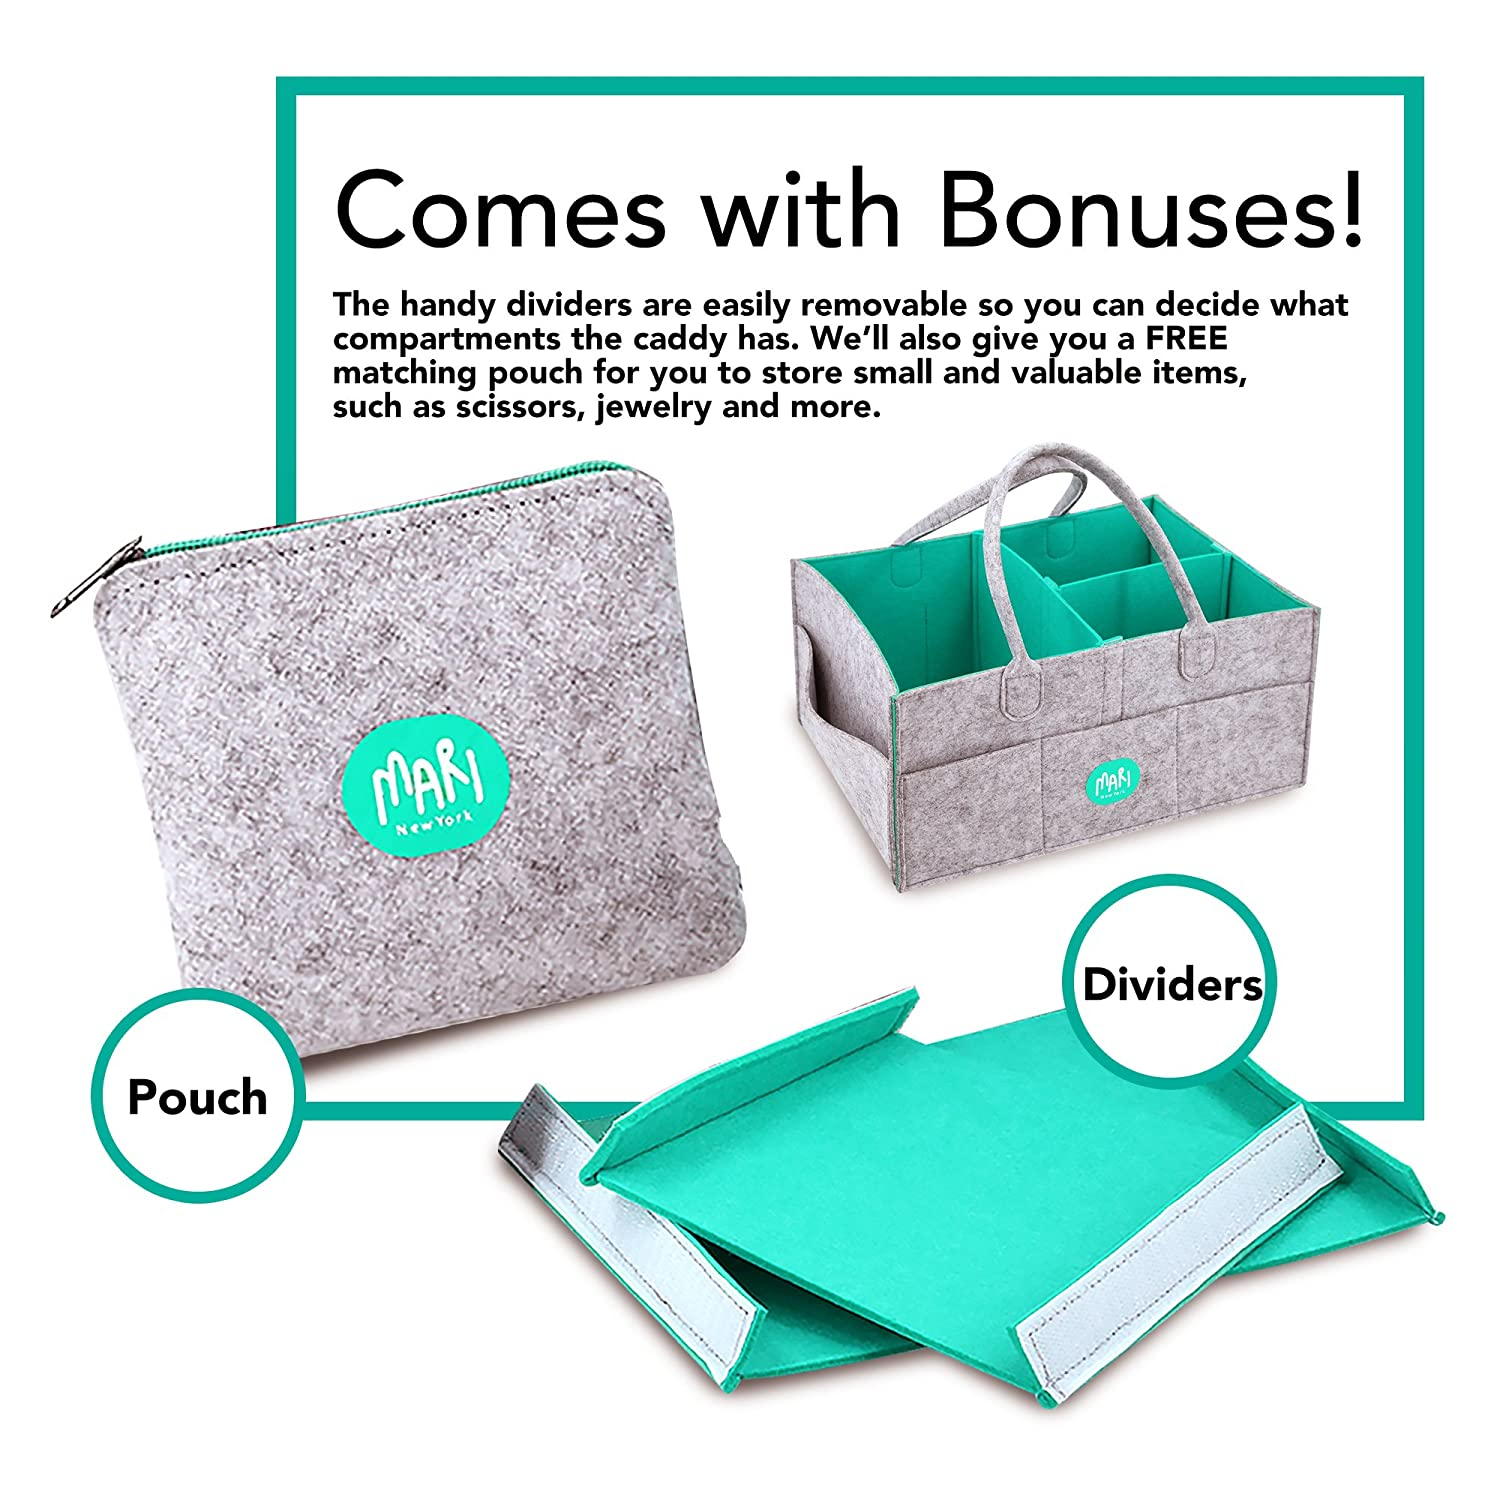 XL Baby Diaper Caddy Organizer with FREE Pouch - Nursery Organizing Basket For Baby Changing Essentials - Baby Shower Gift Idea and Toy Storage For Boys And Girls | MARI New York